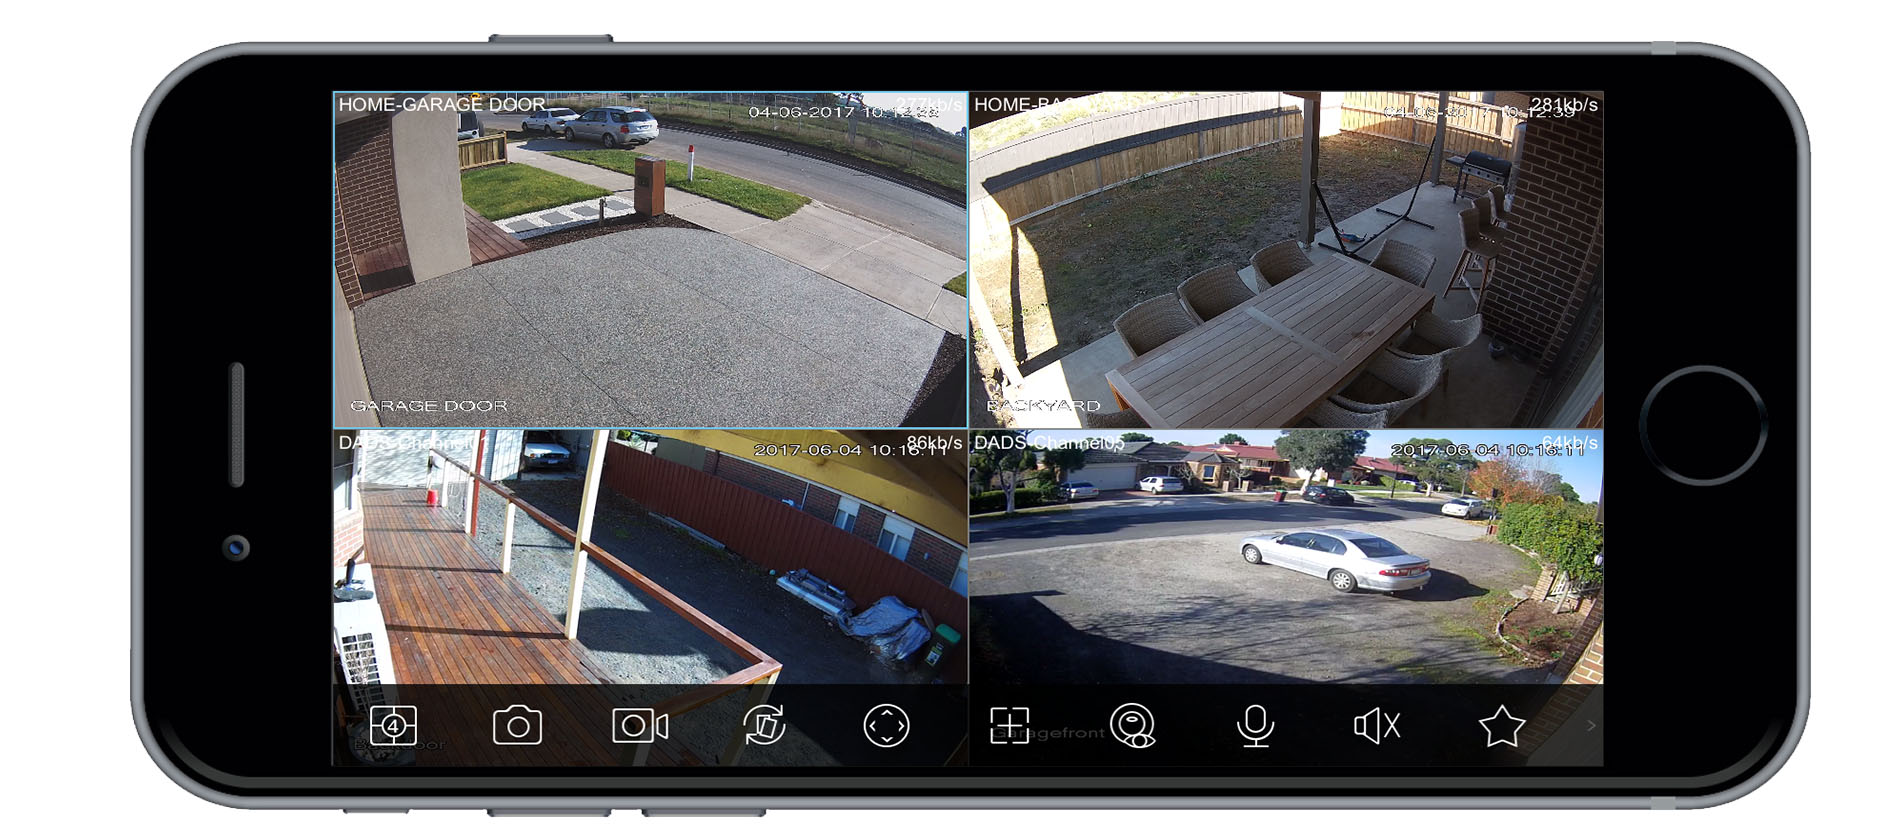 iphone cctv website